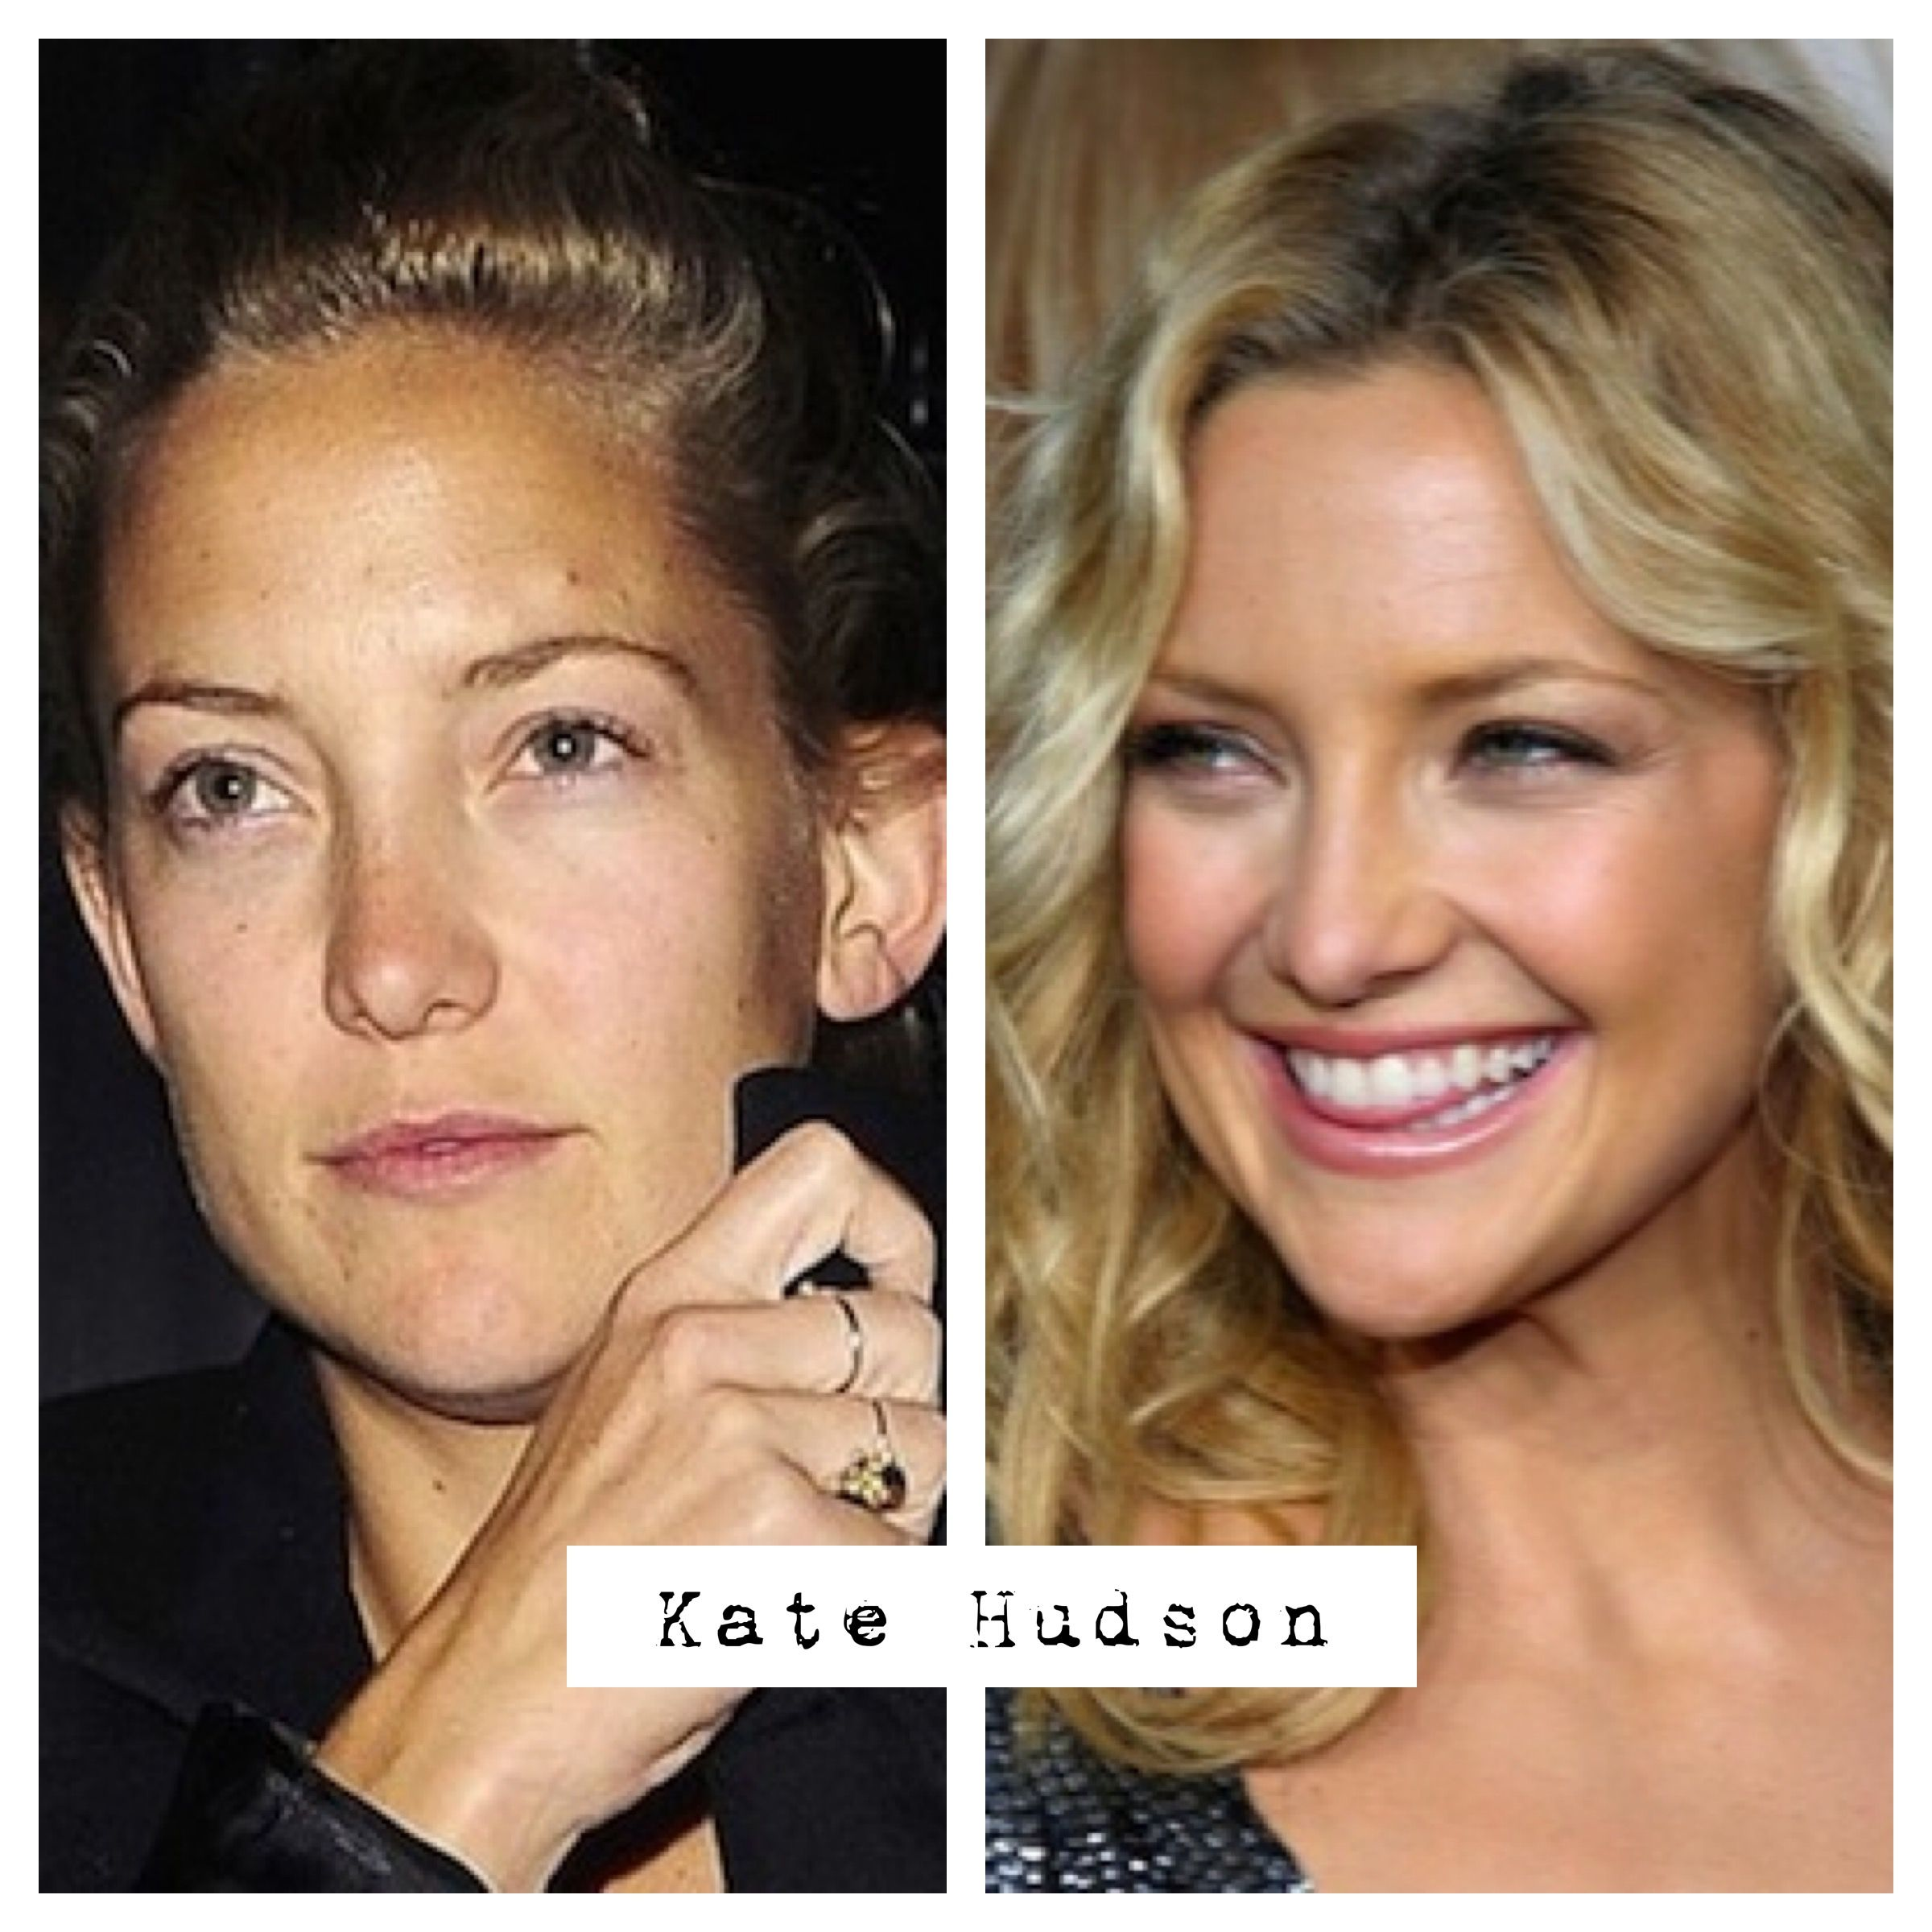 """Kate Hudson without makeup before and after. Love Love Love this woman! She is totally hot without adhering to the social norms of """"the perfect hourglass figure and huge pout"""". And she hasn't gone under the knife. Because she doesn't need to. She's still a striking and beautiful woman! But it is nice to see that she's only human too..."""